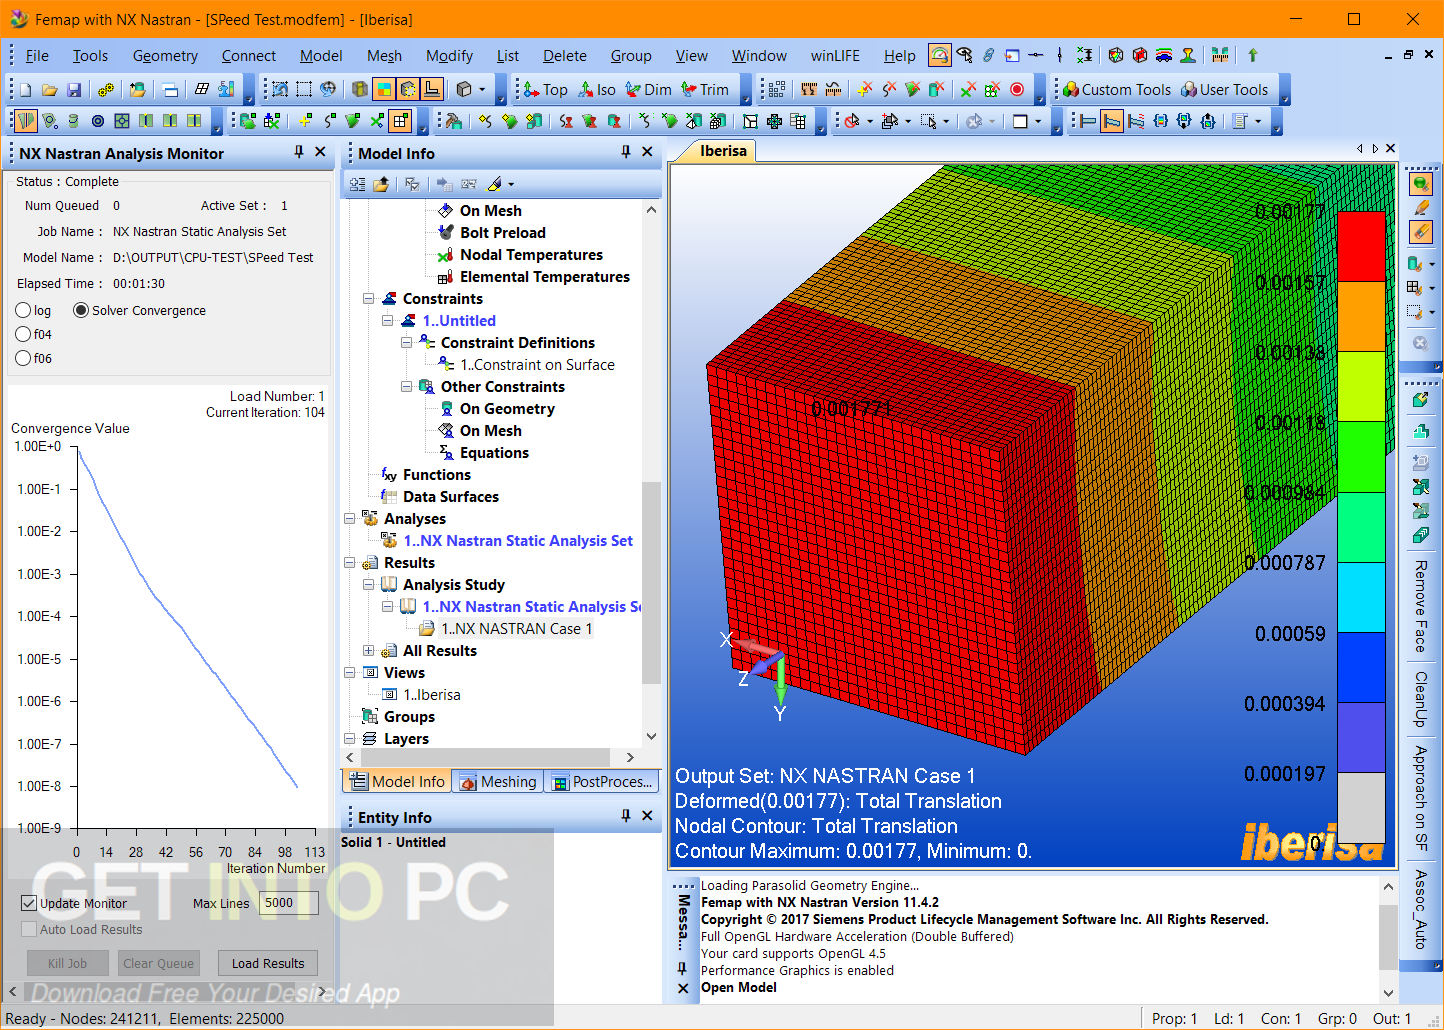 Siemens FEMAP 11.4.2 with NX Nastran x64 Latest Version Download